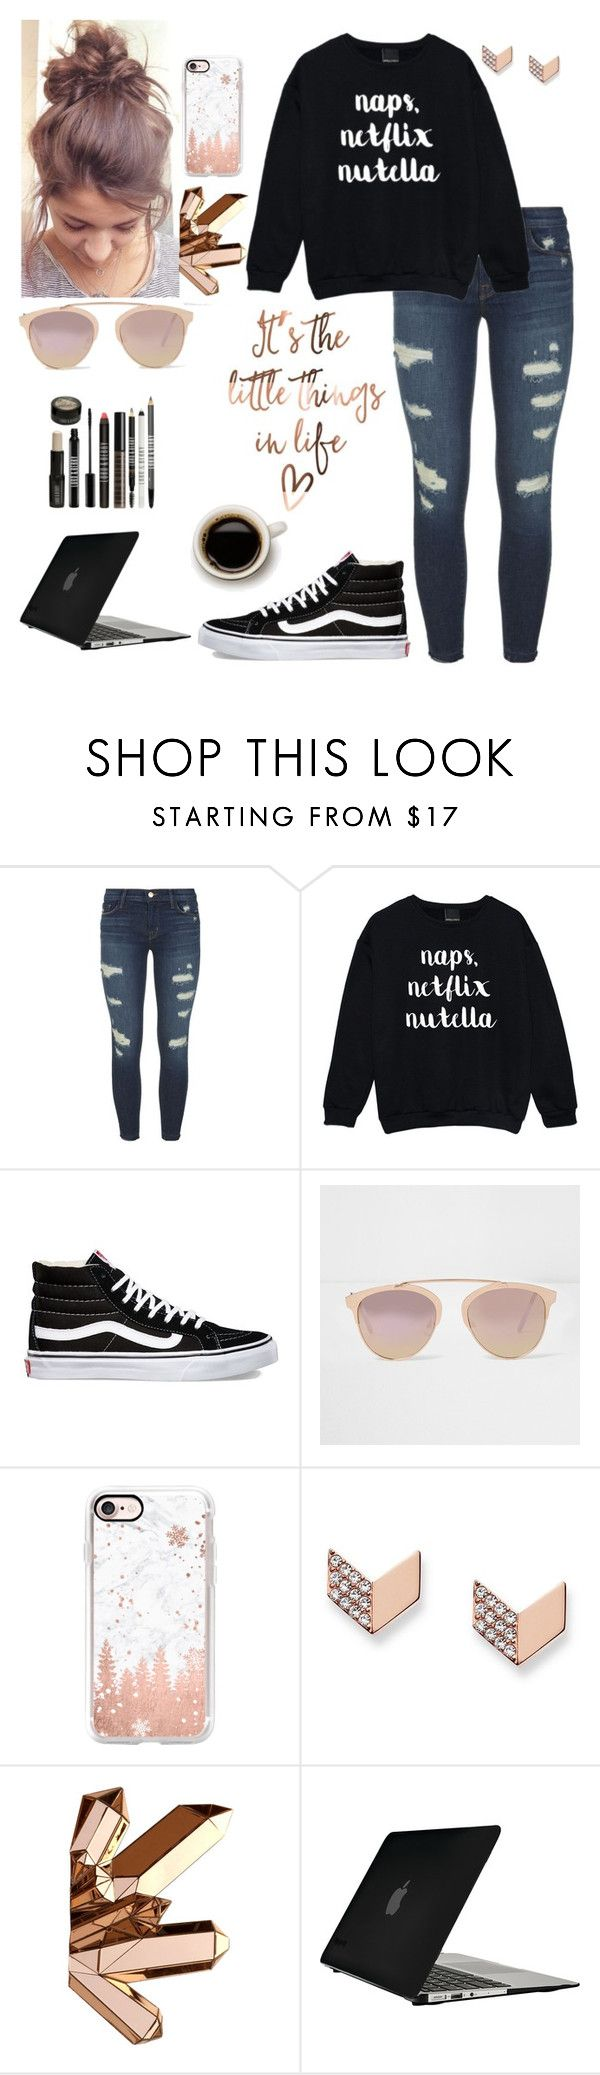 """""""Mmm I could go for some pizza right about now!!"""" by lillyd26 ❤ liked on Polyvore featuring J Brand, Vans, River Island, Casetify, FOSSIL, Speck and Lord & Berry"""